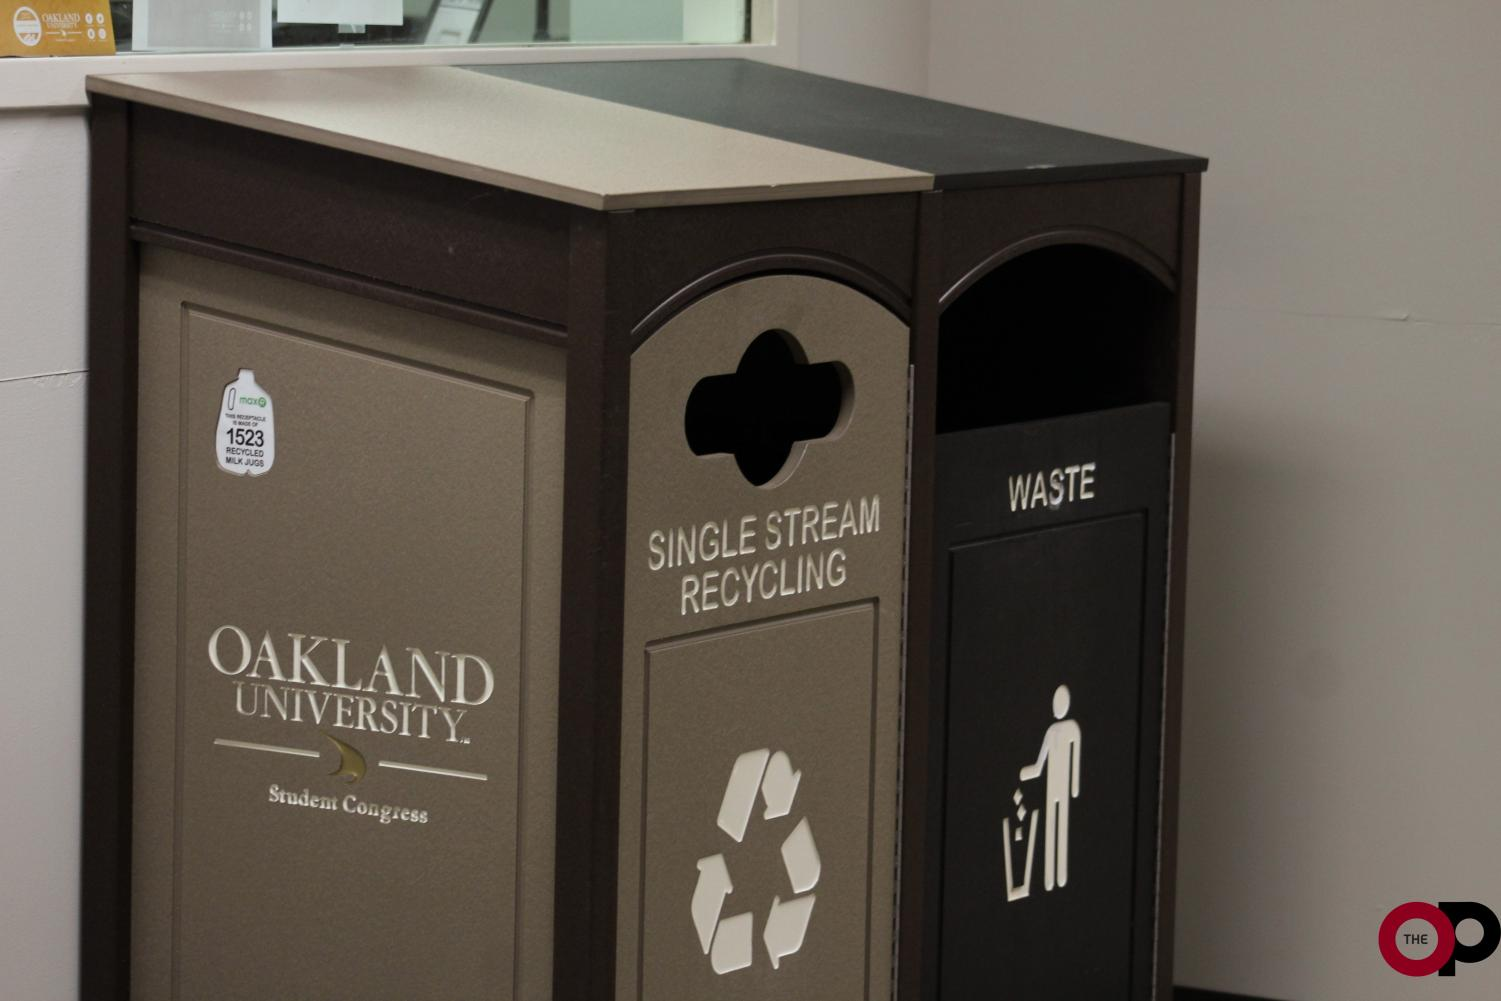 Offices across campus will receive labeled single-stream recycling bins to promote mindfulness of the environment.